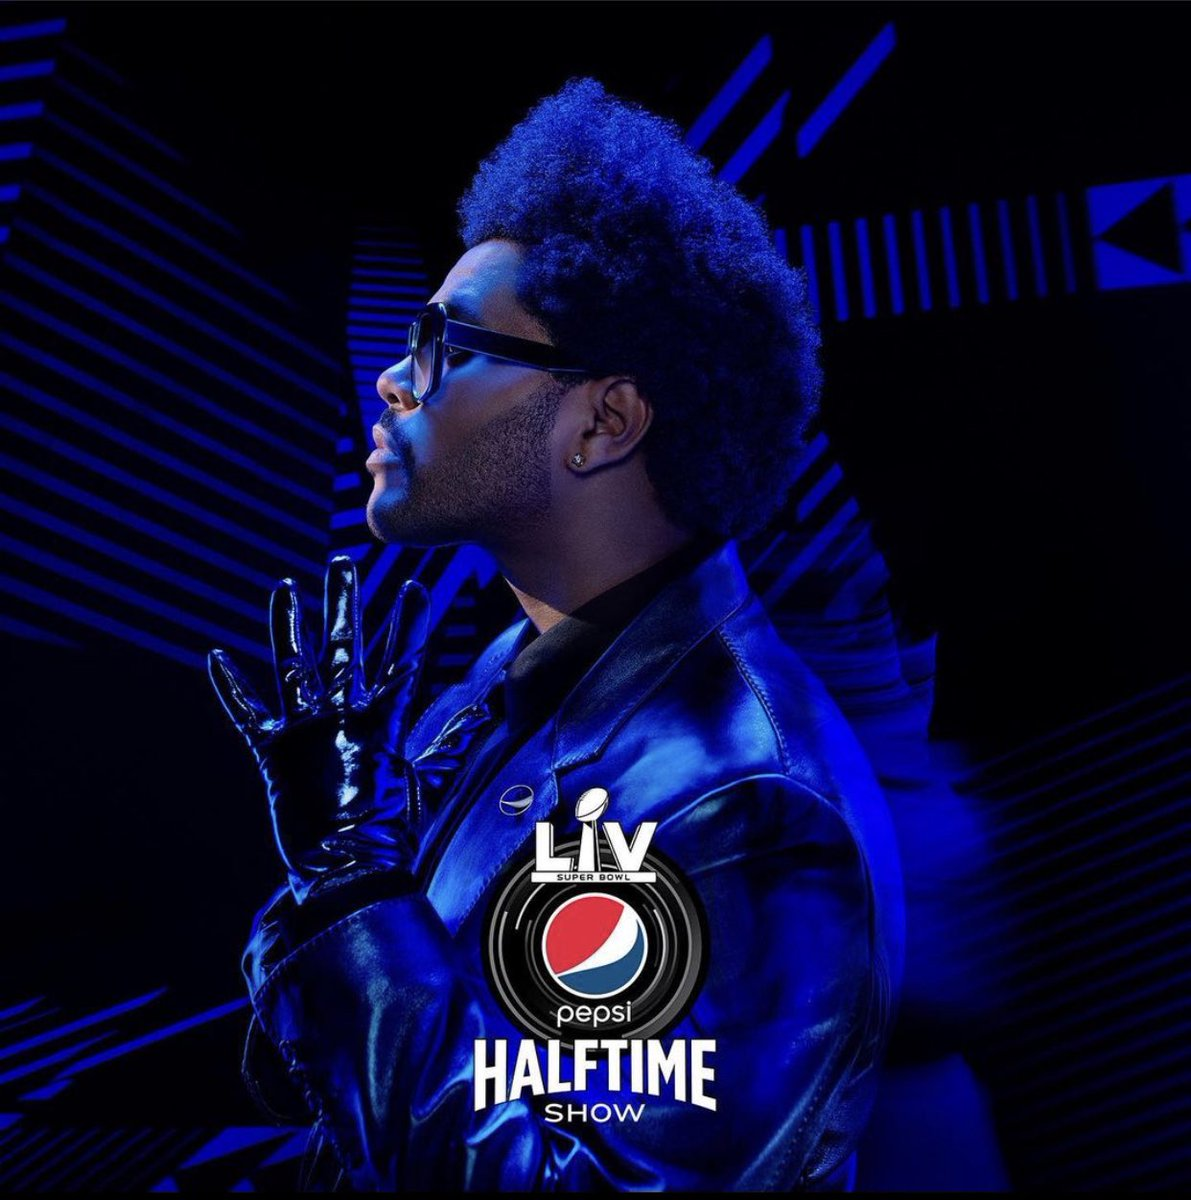 🤯 @theweeknd Is performing Live on one of the biggest stages of them all. The SUPER BOWL! @pepsi #PepsiHalftime #music #nfl #SuperBowl #heyyilovemusic